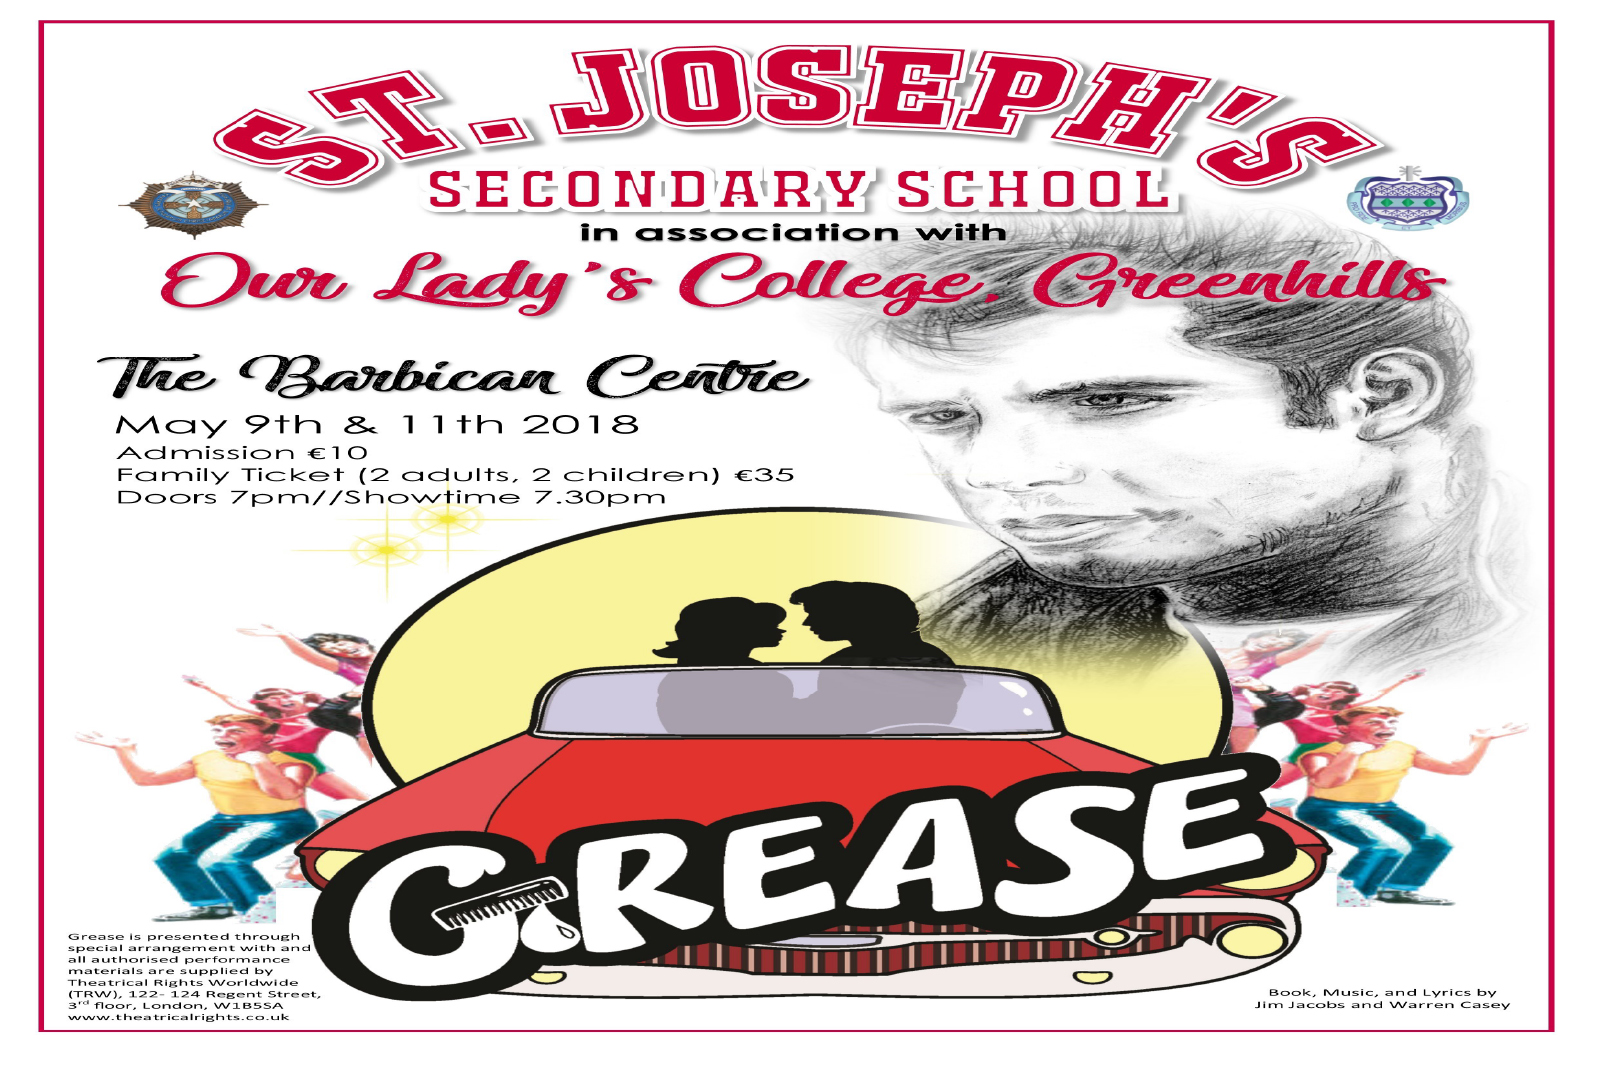 http://www.thebarbican.ie/events/st-josephs-greenhill-secondary-schools-present-grease-2018-05-09/